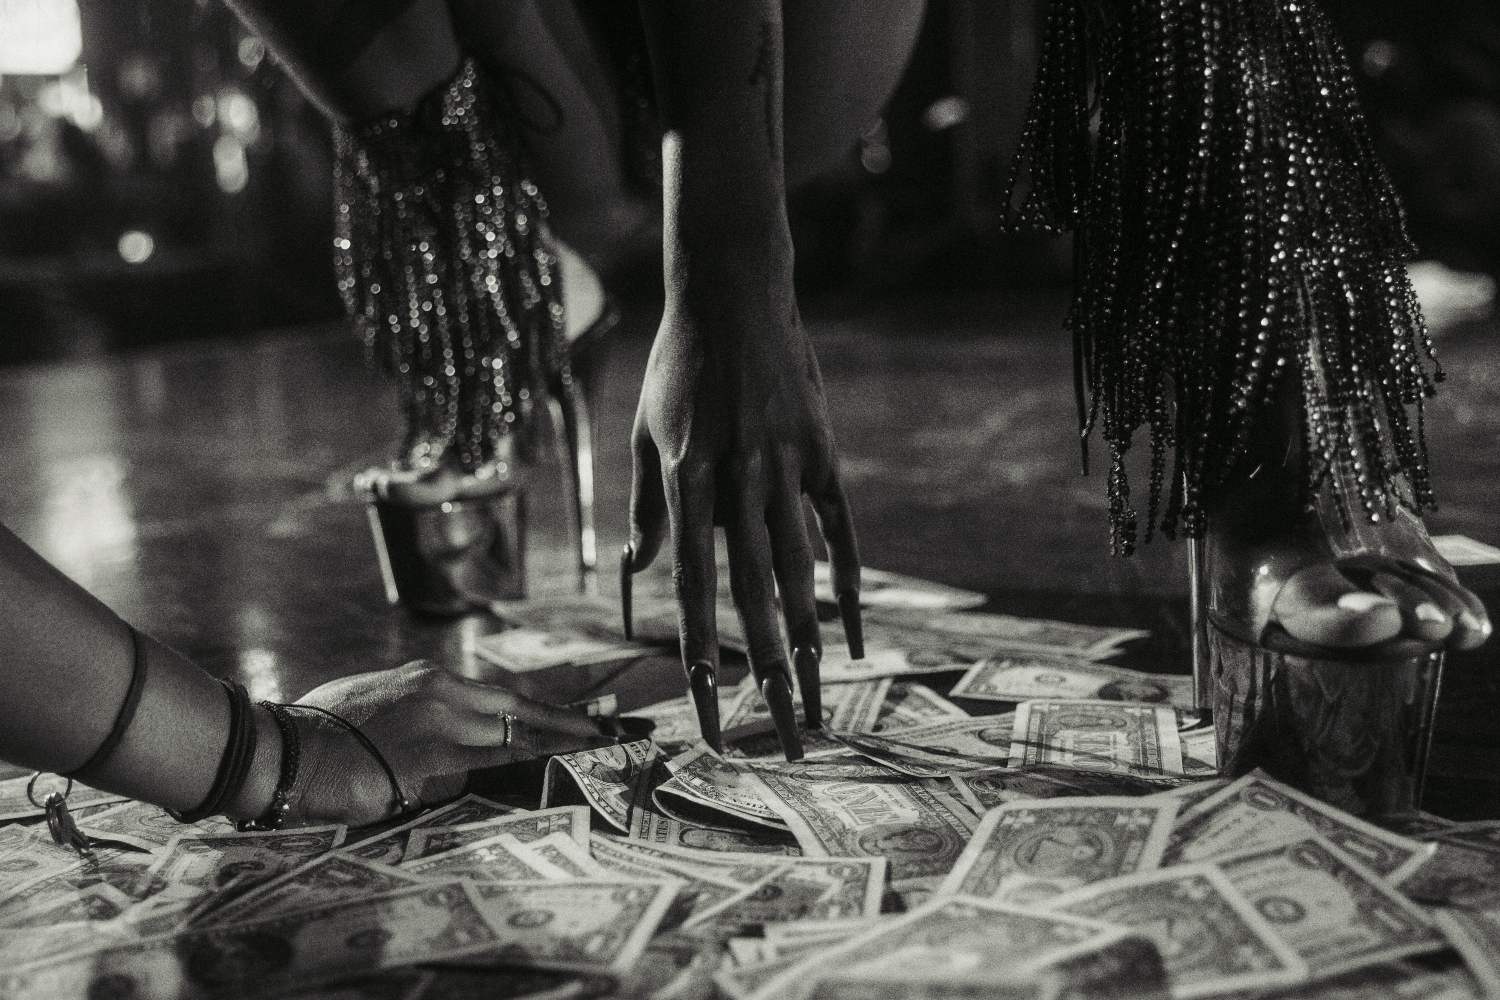 Black and white photo shows a stripper's hand touching the floor, covered in dollar bills